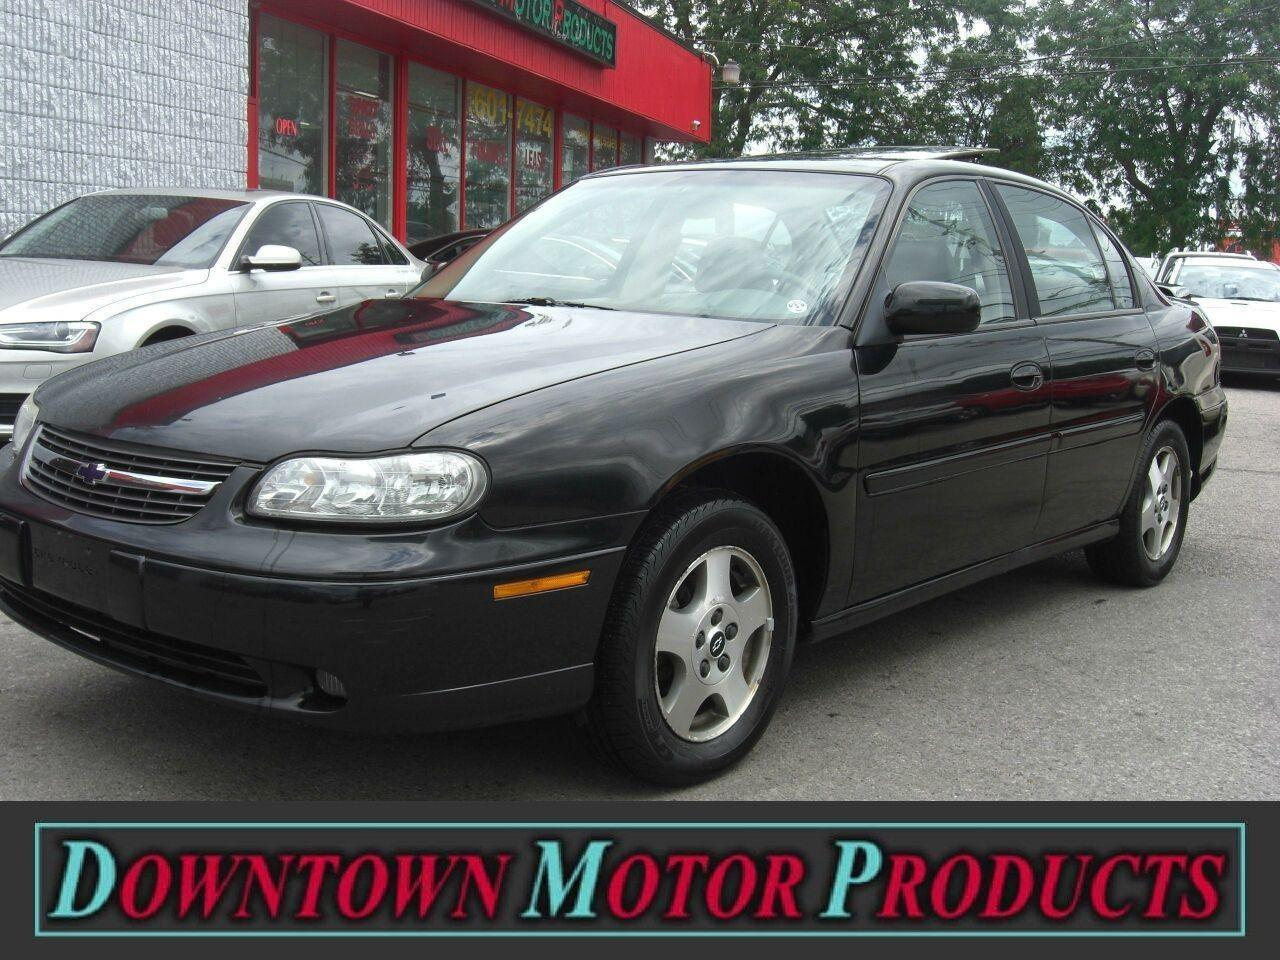 used 2003 chevrolet malibu ls for sale in london, ontario carpages.ca